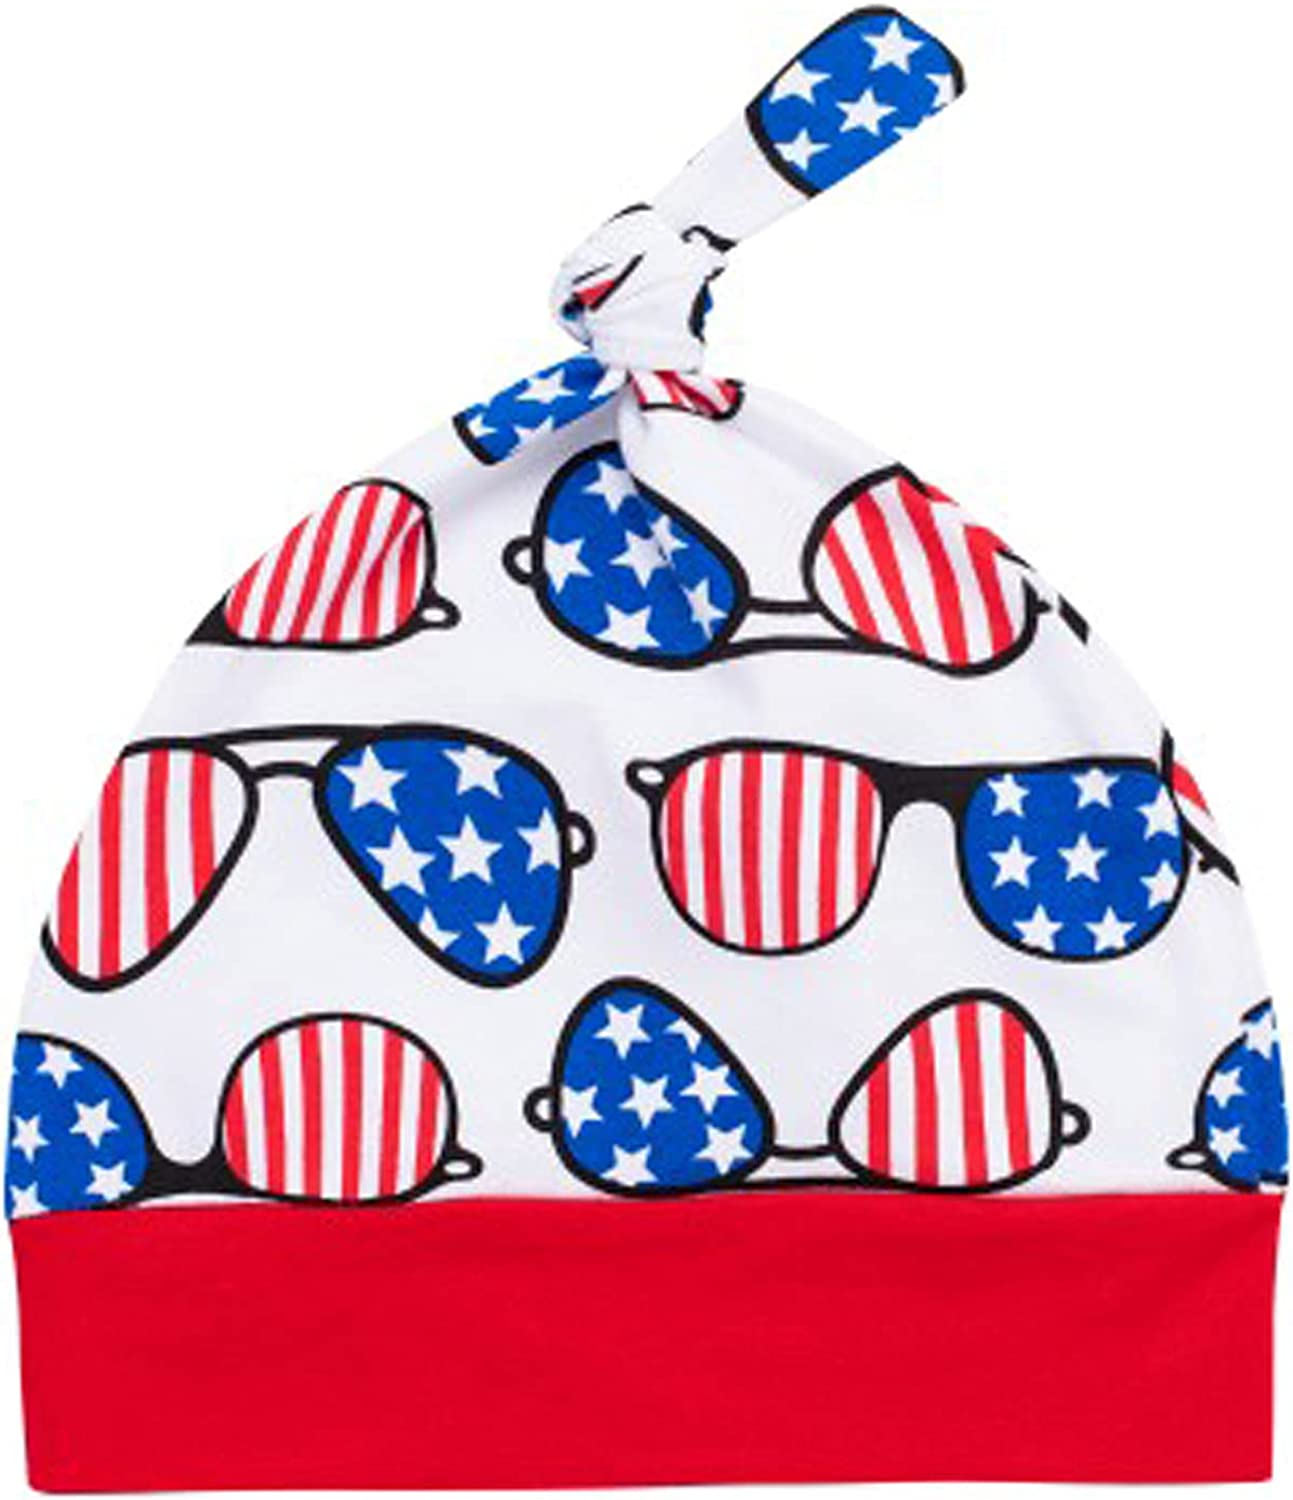 Infant Baby Boy My First 4th of July Independence Day Bodysuit Clothes Short Sleeveless Outfit with Hat